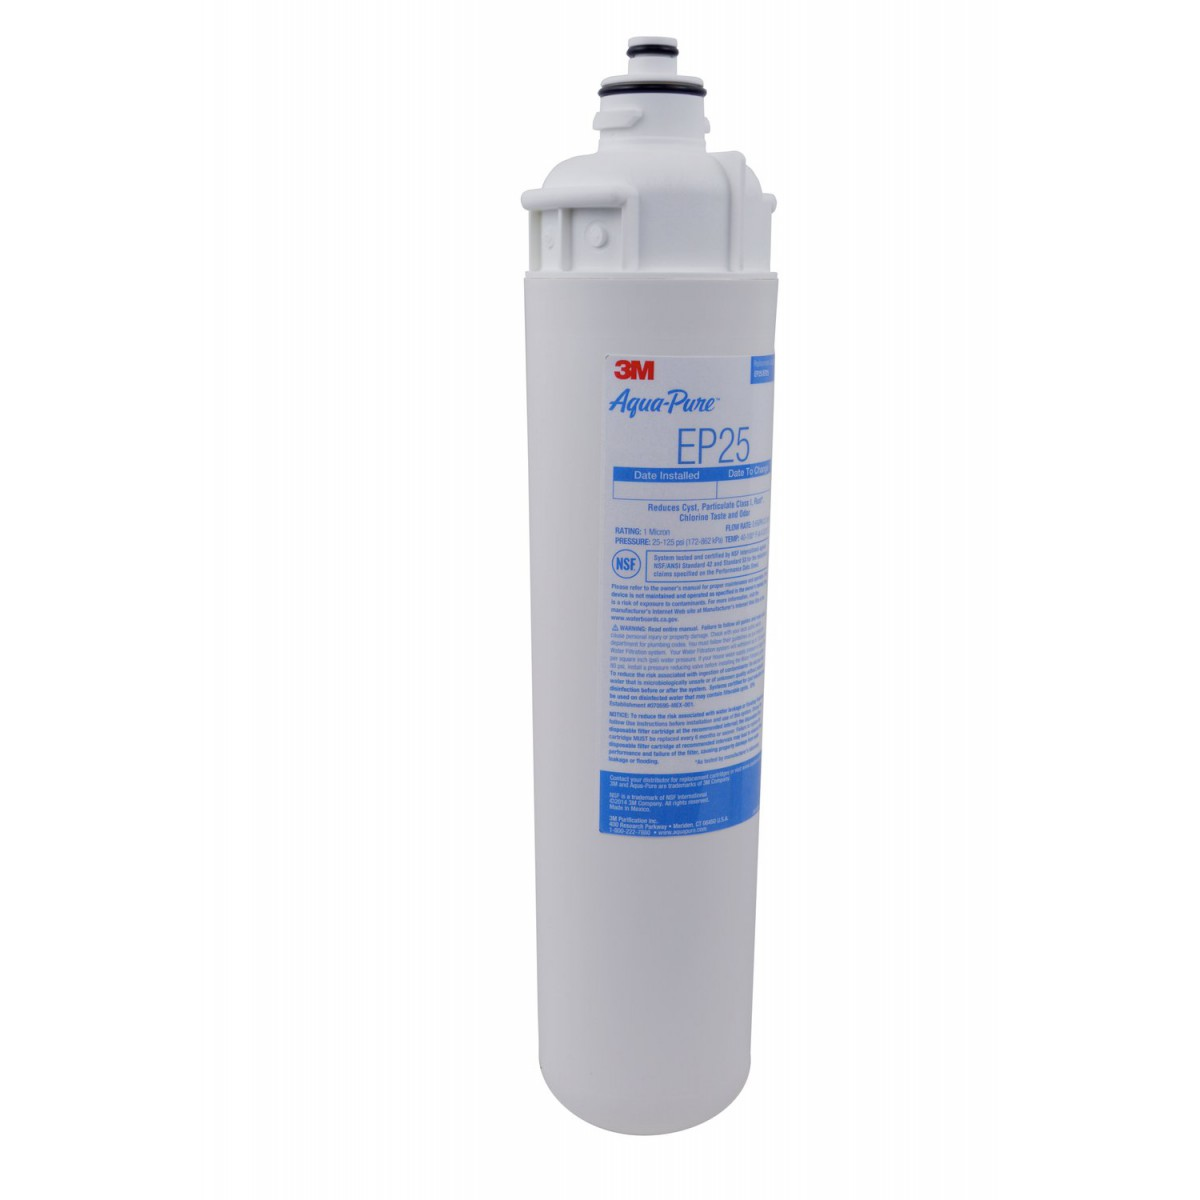 Ep25 3m Aqua Pure Whole House Filter Replacement Cartridge